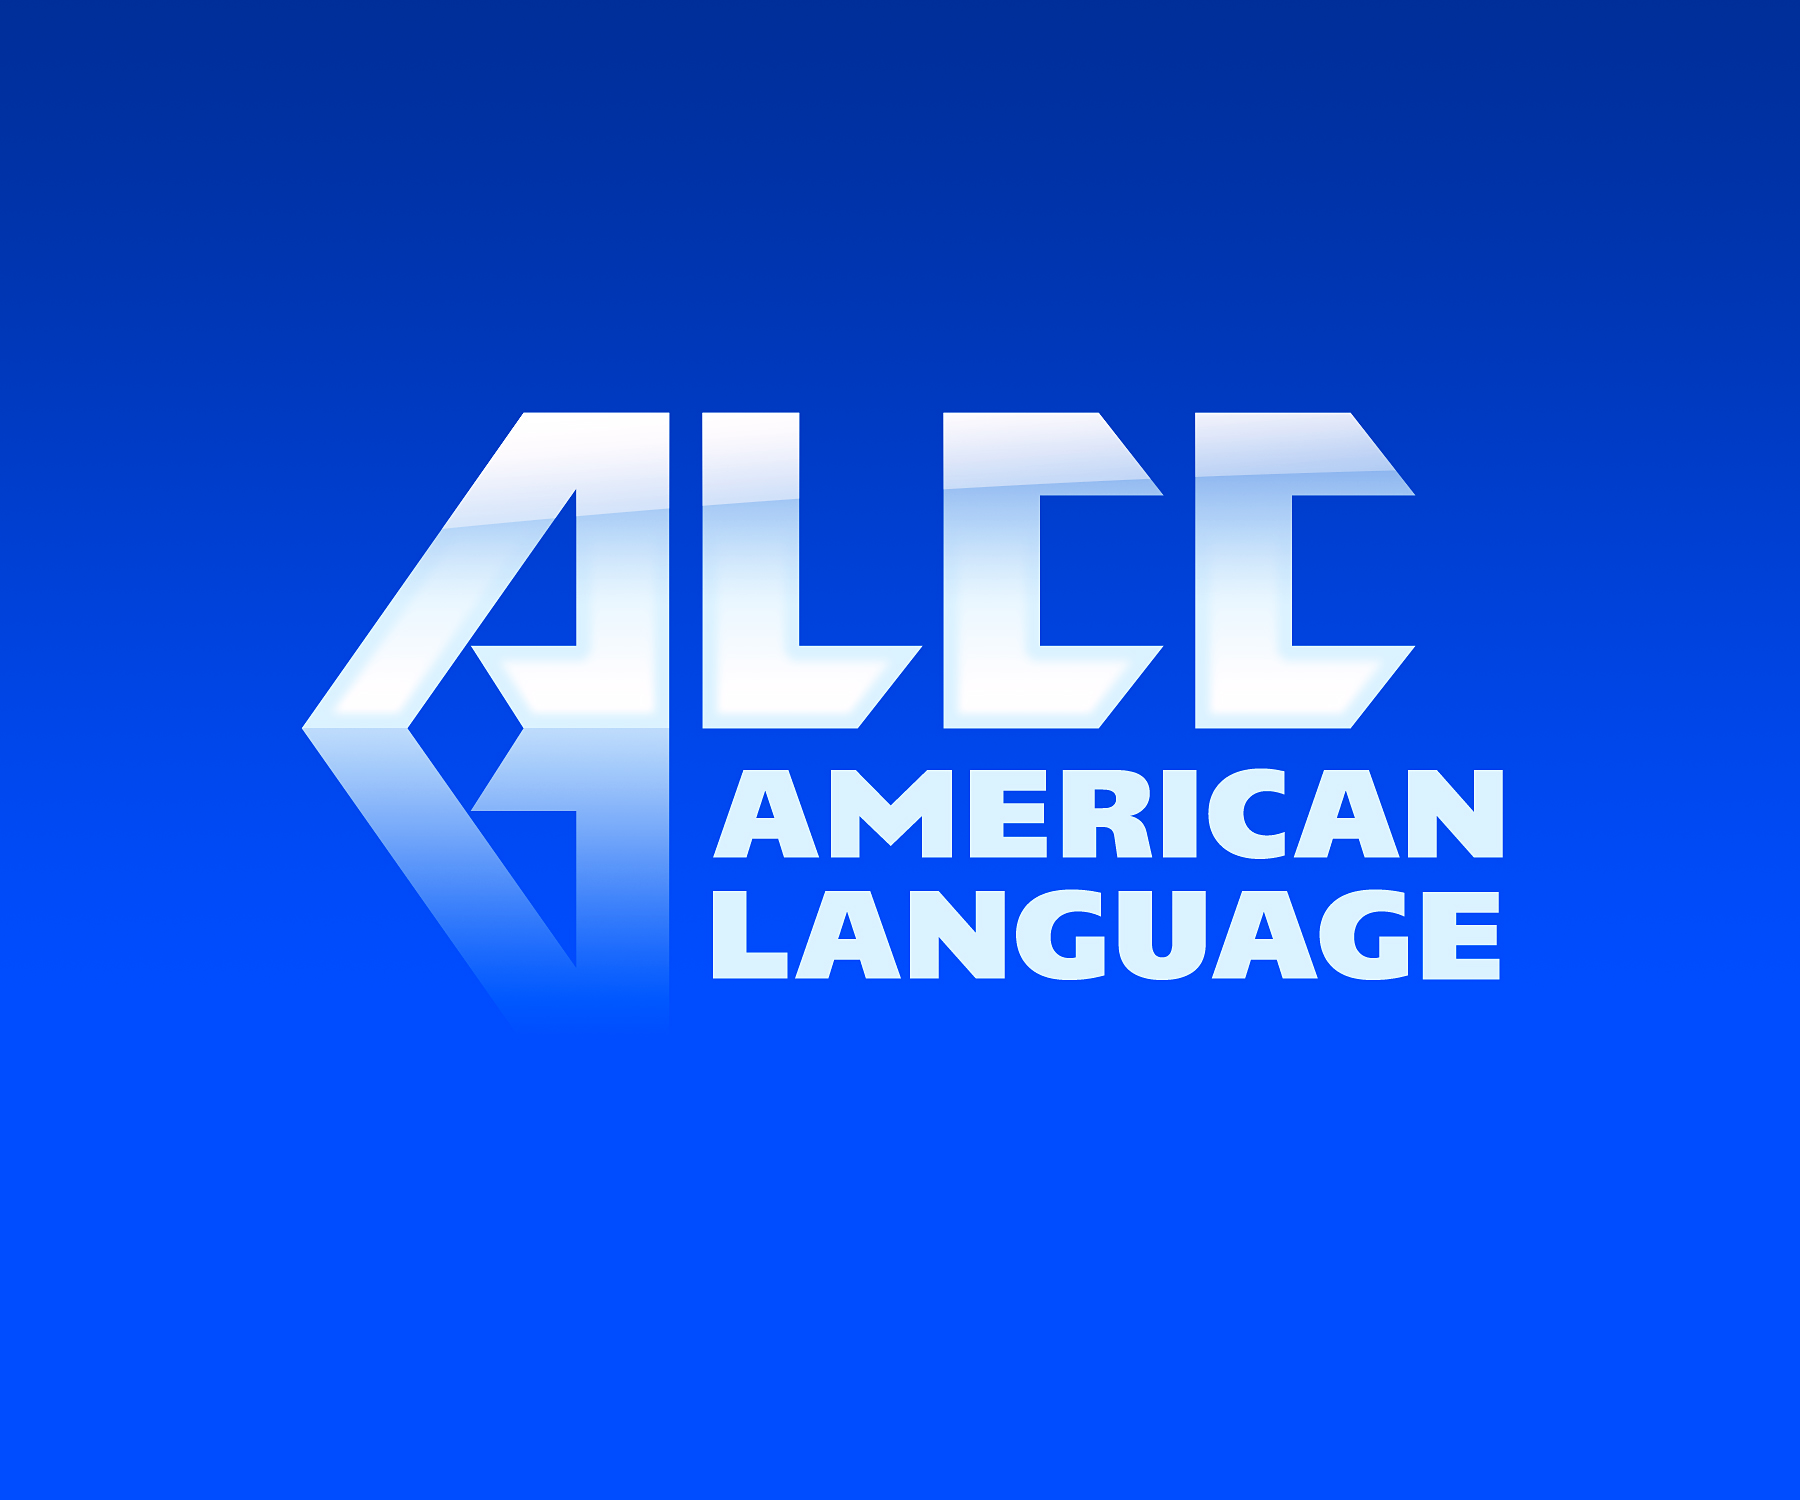 LOGO_American Language Communication Center (ALCC).jpg